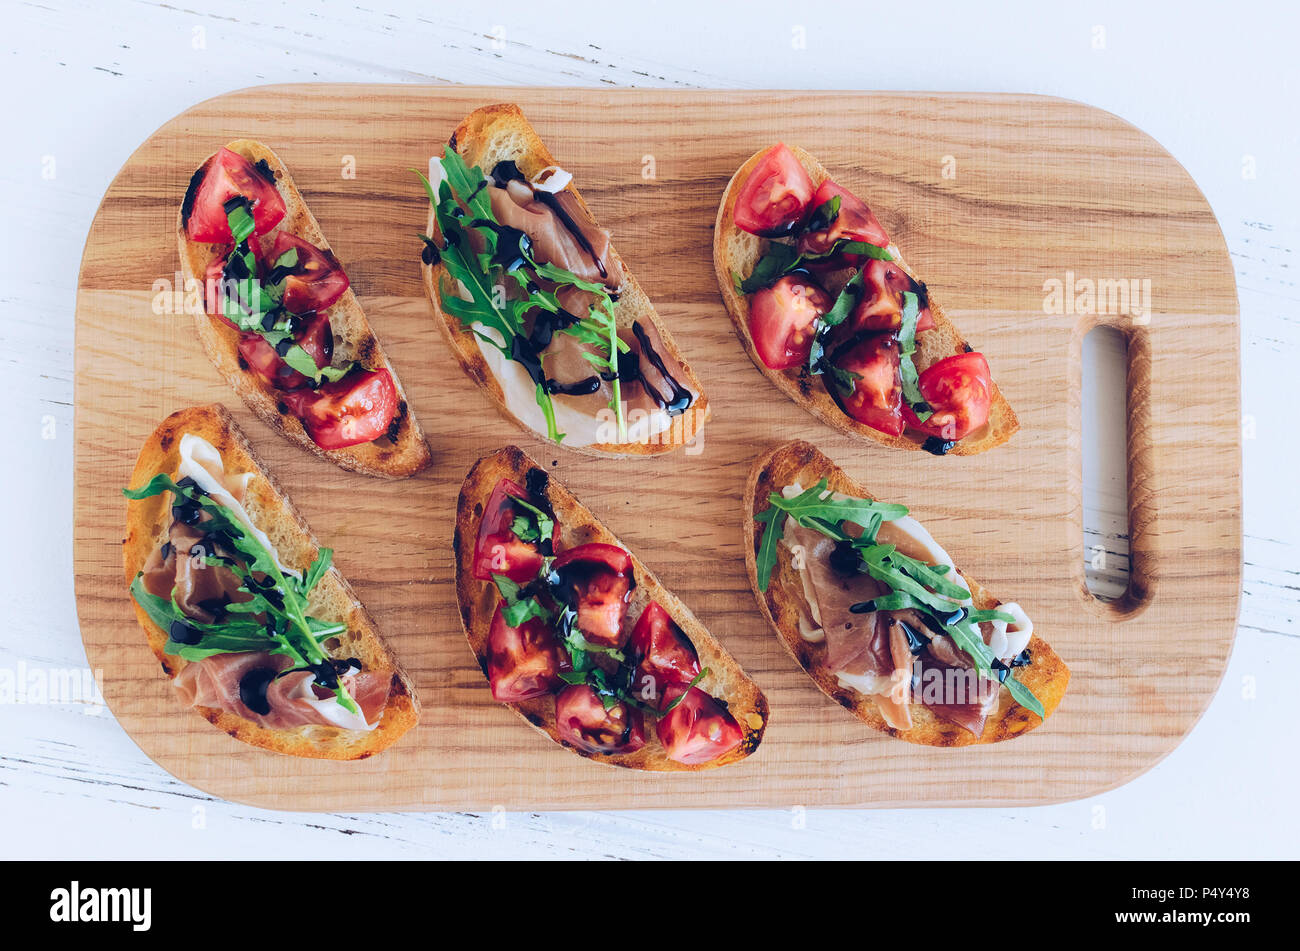 Selection of tasty Italian bruschetta or canapes on toasted baguette topped with tomatoes, Prosciutto di Parma, arugula and balsamic glasse sauce on c - Stock Image